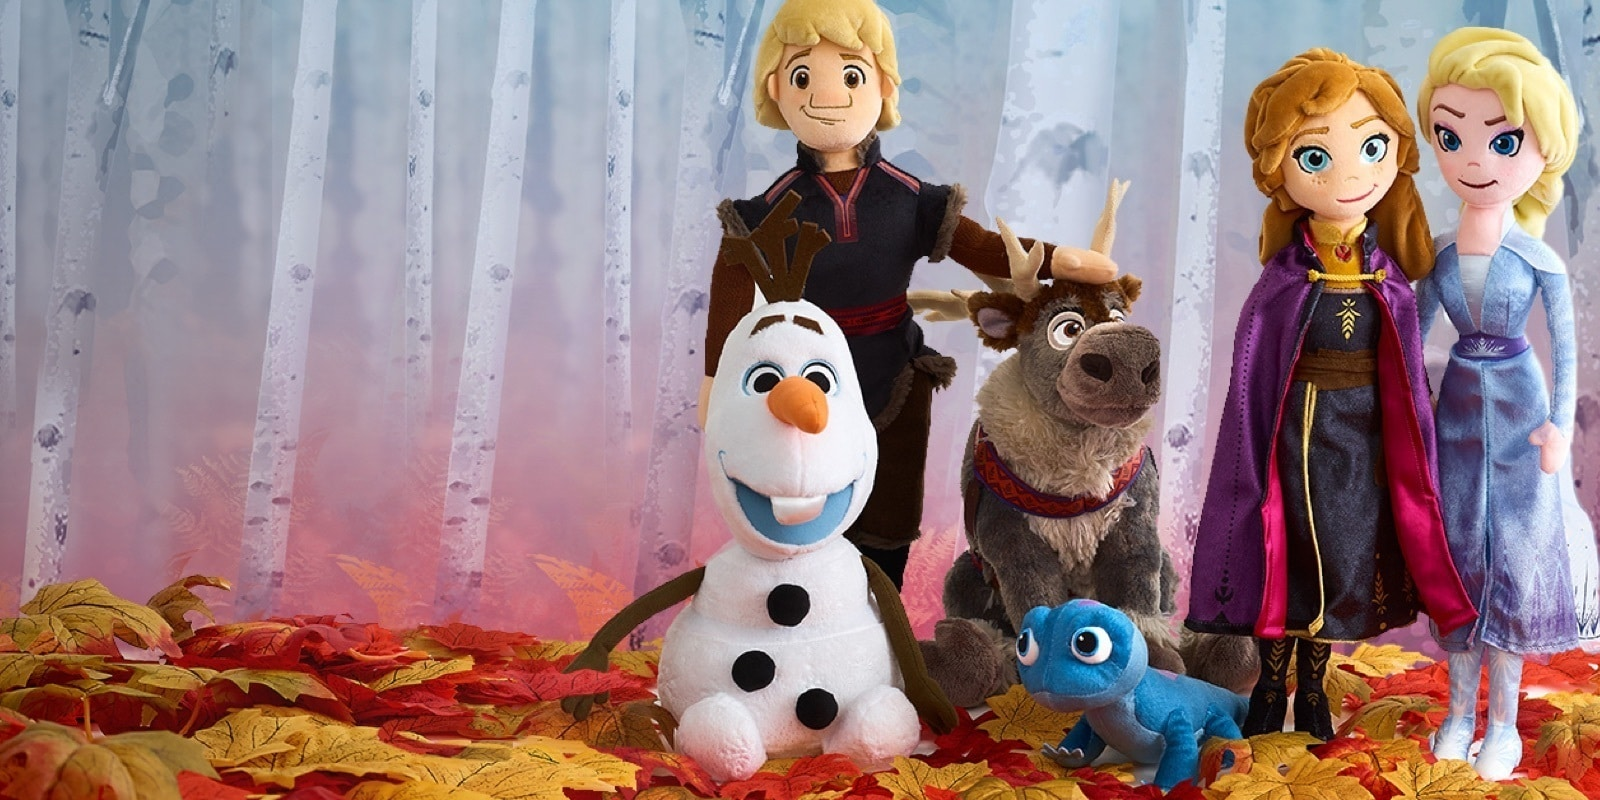 A selection of frozen 2 inspired plush including Elsa, Anna, Sven and Olaf